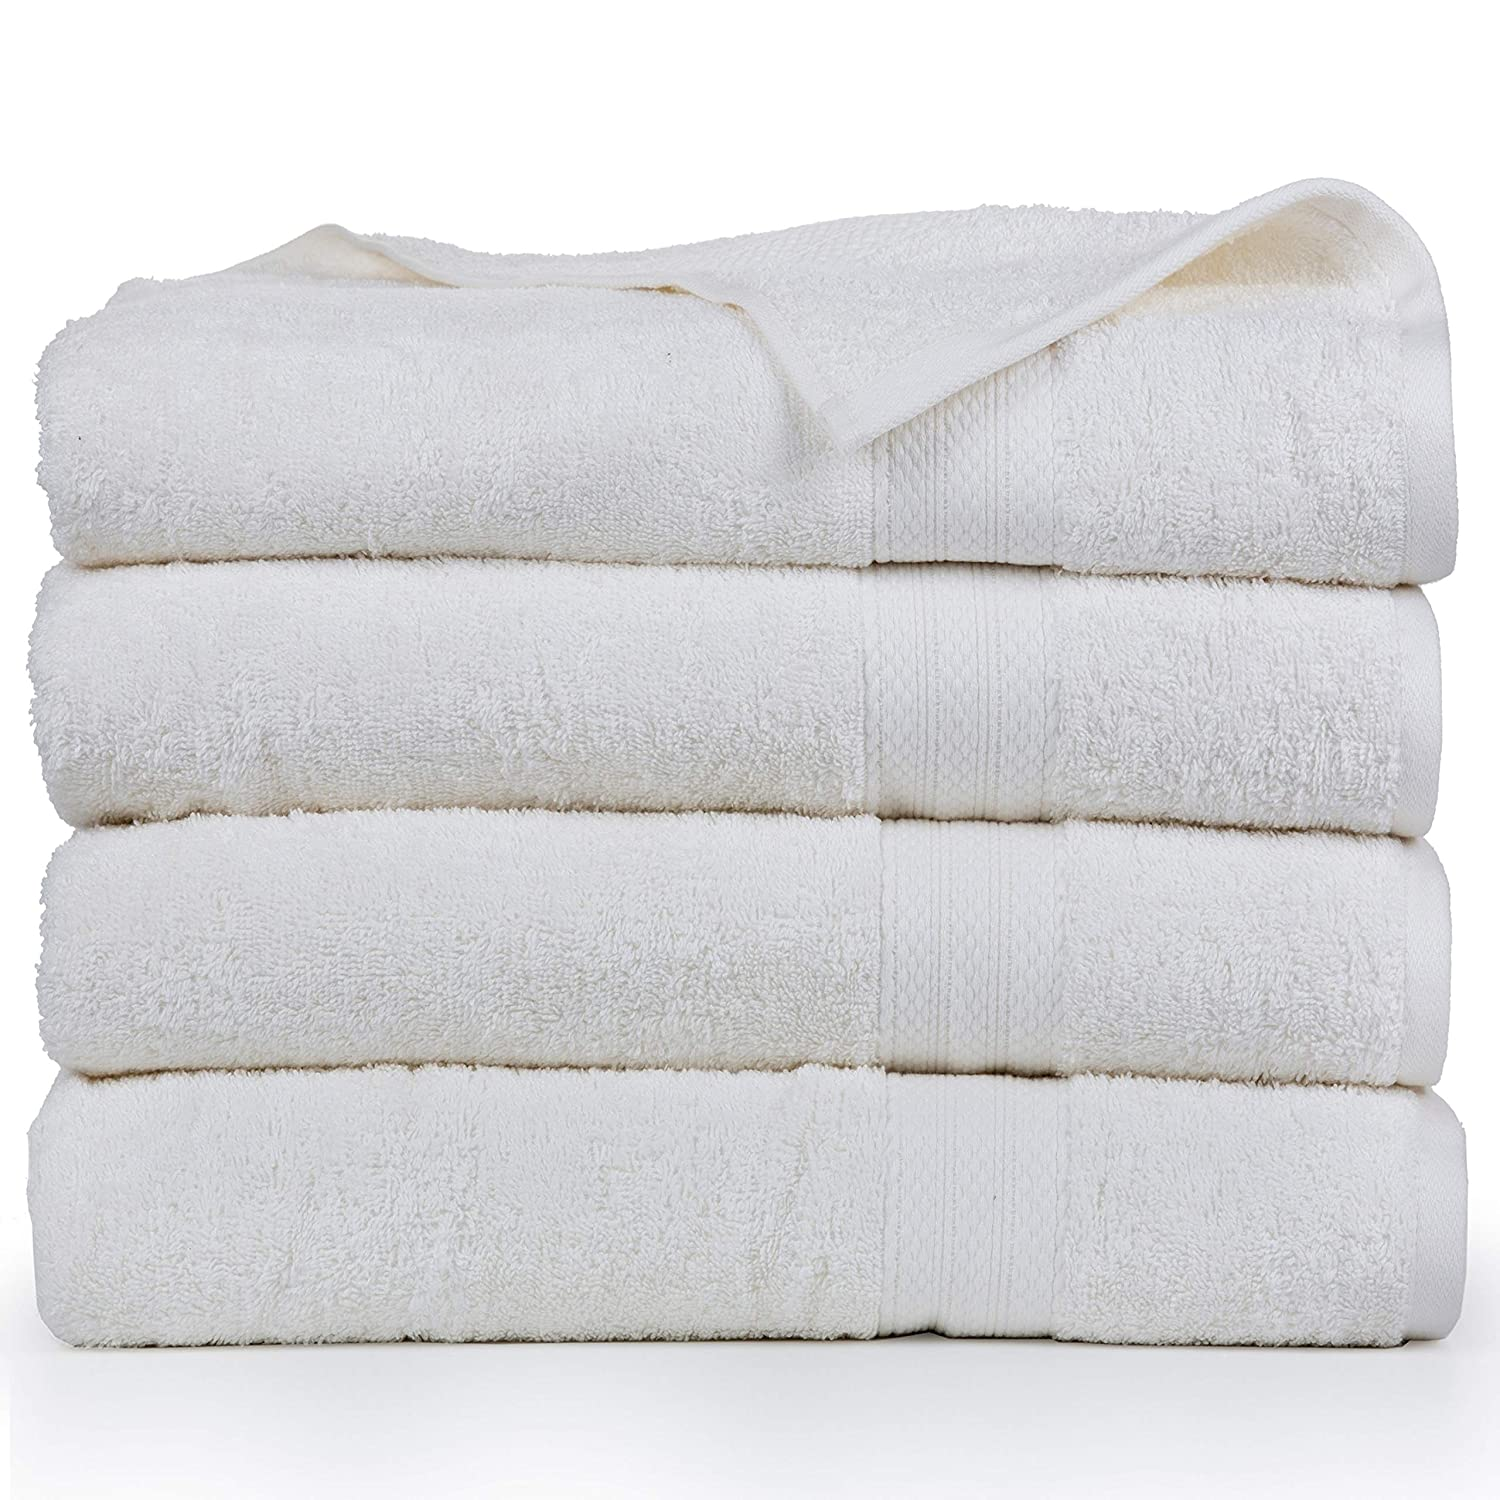 Jade Affinity Home Collection Economic Collection Cotton Soft Oversized Bath Sheets 4 Pack